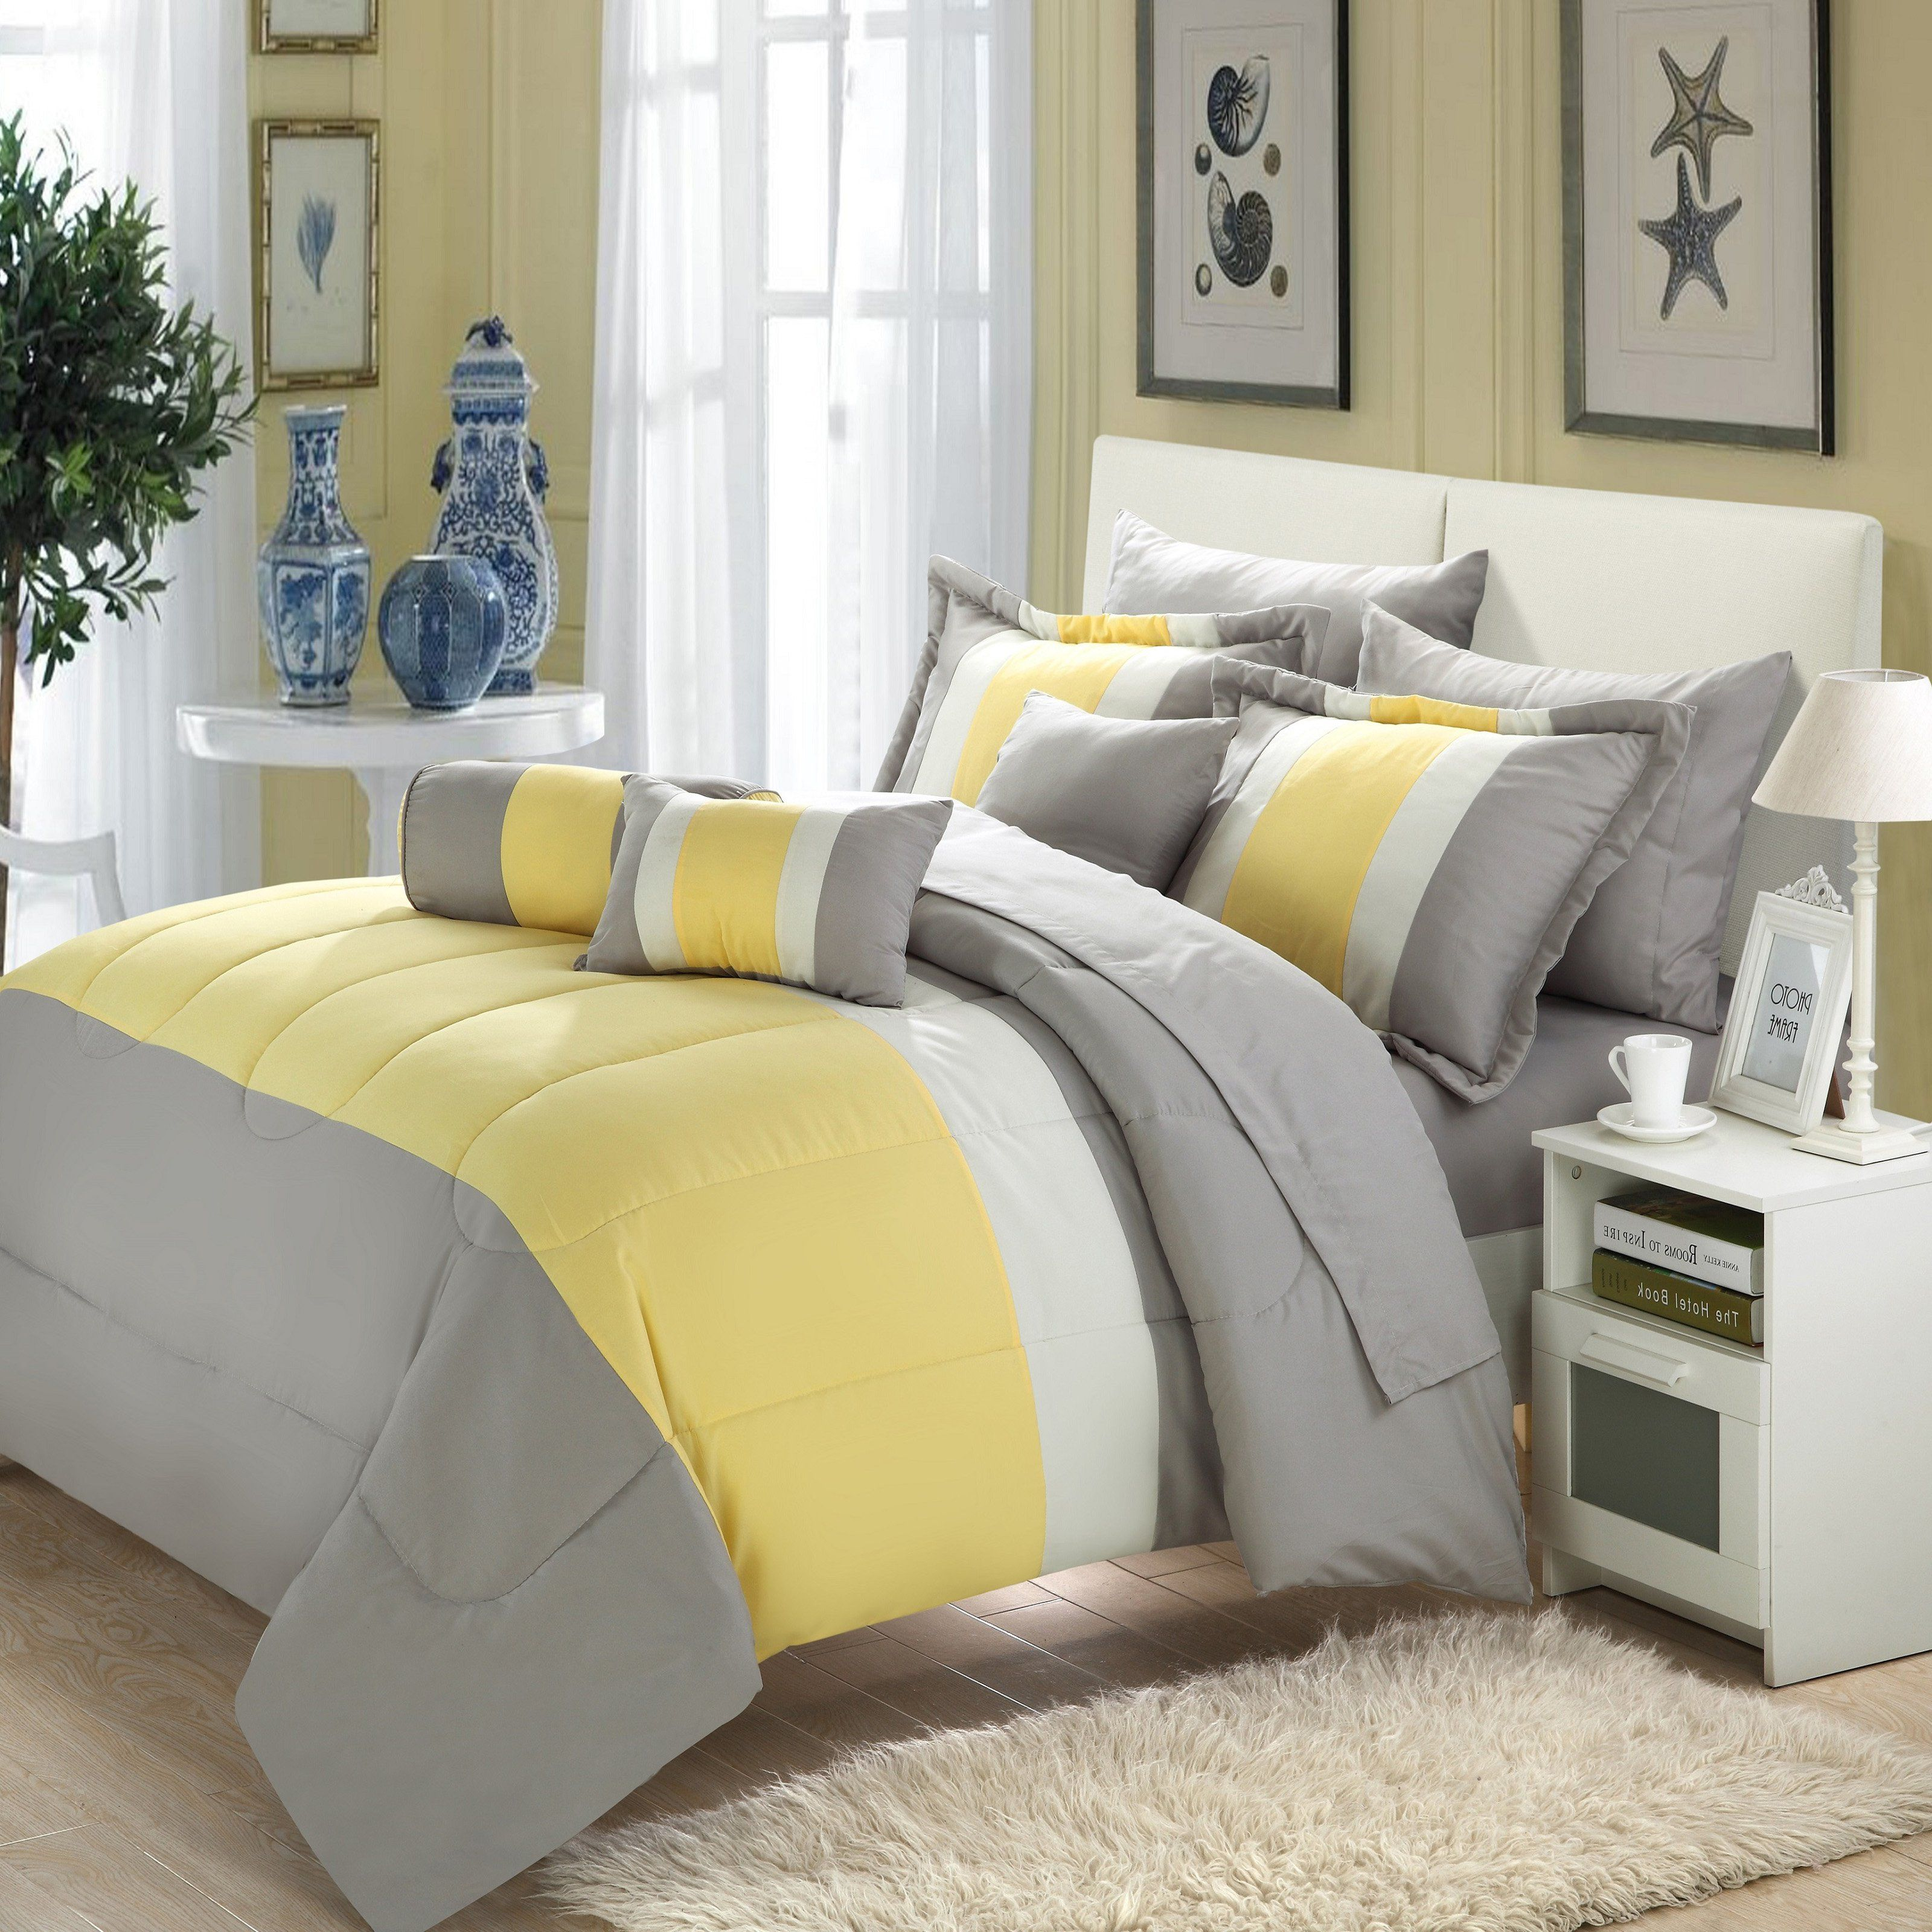 Chic Home Serenity 10 Piece Bed In A Bag Comforter Set Comforter Sets King Comforter Sets Bedding Sets